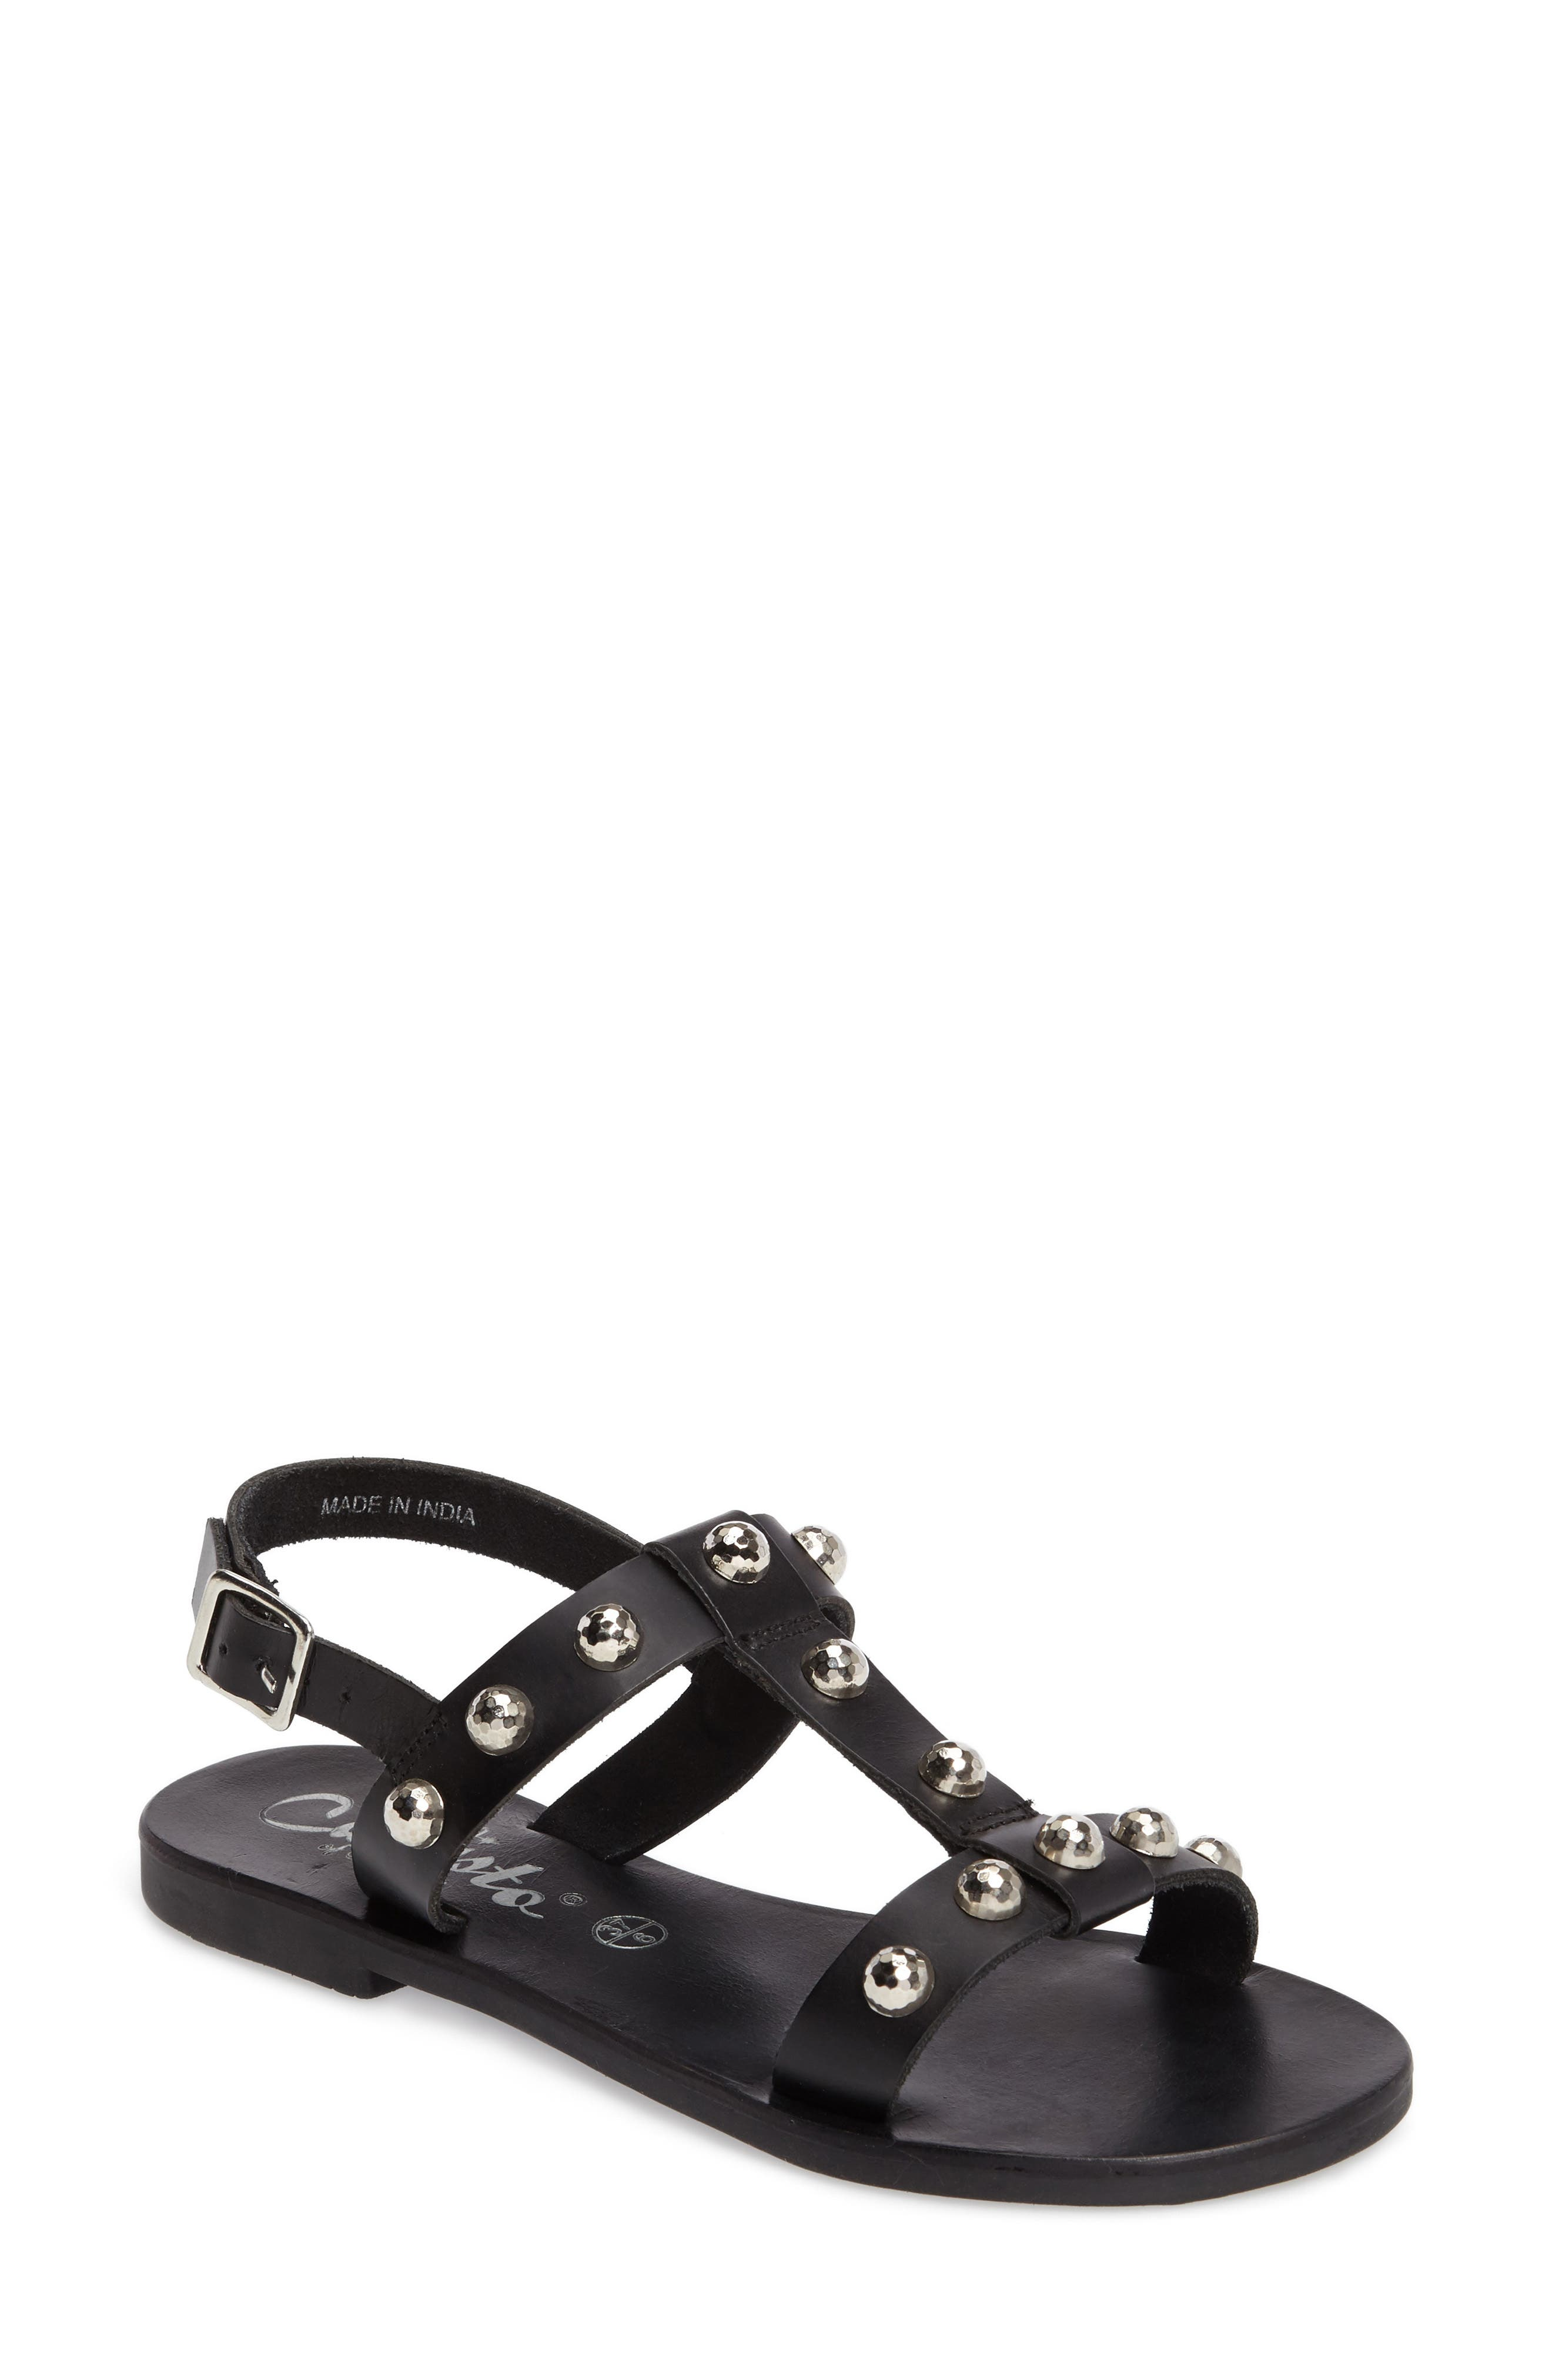 Bristol Sandal,                             Main thumbnail 1, color,                             Black Leather